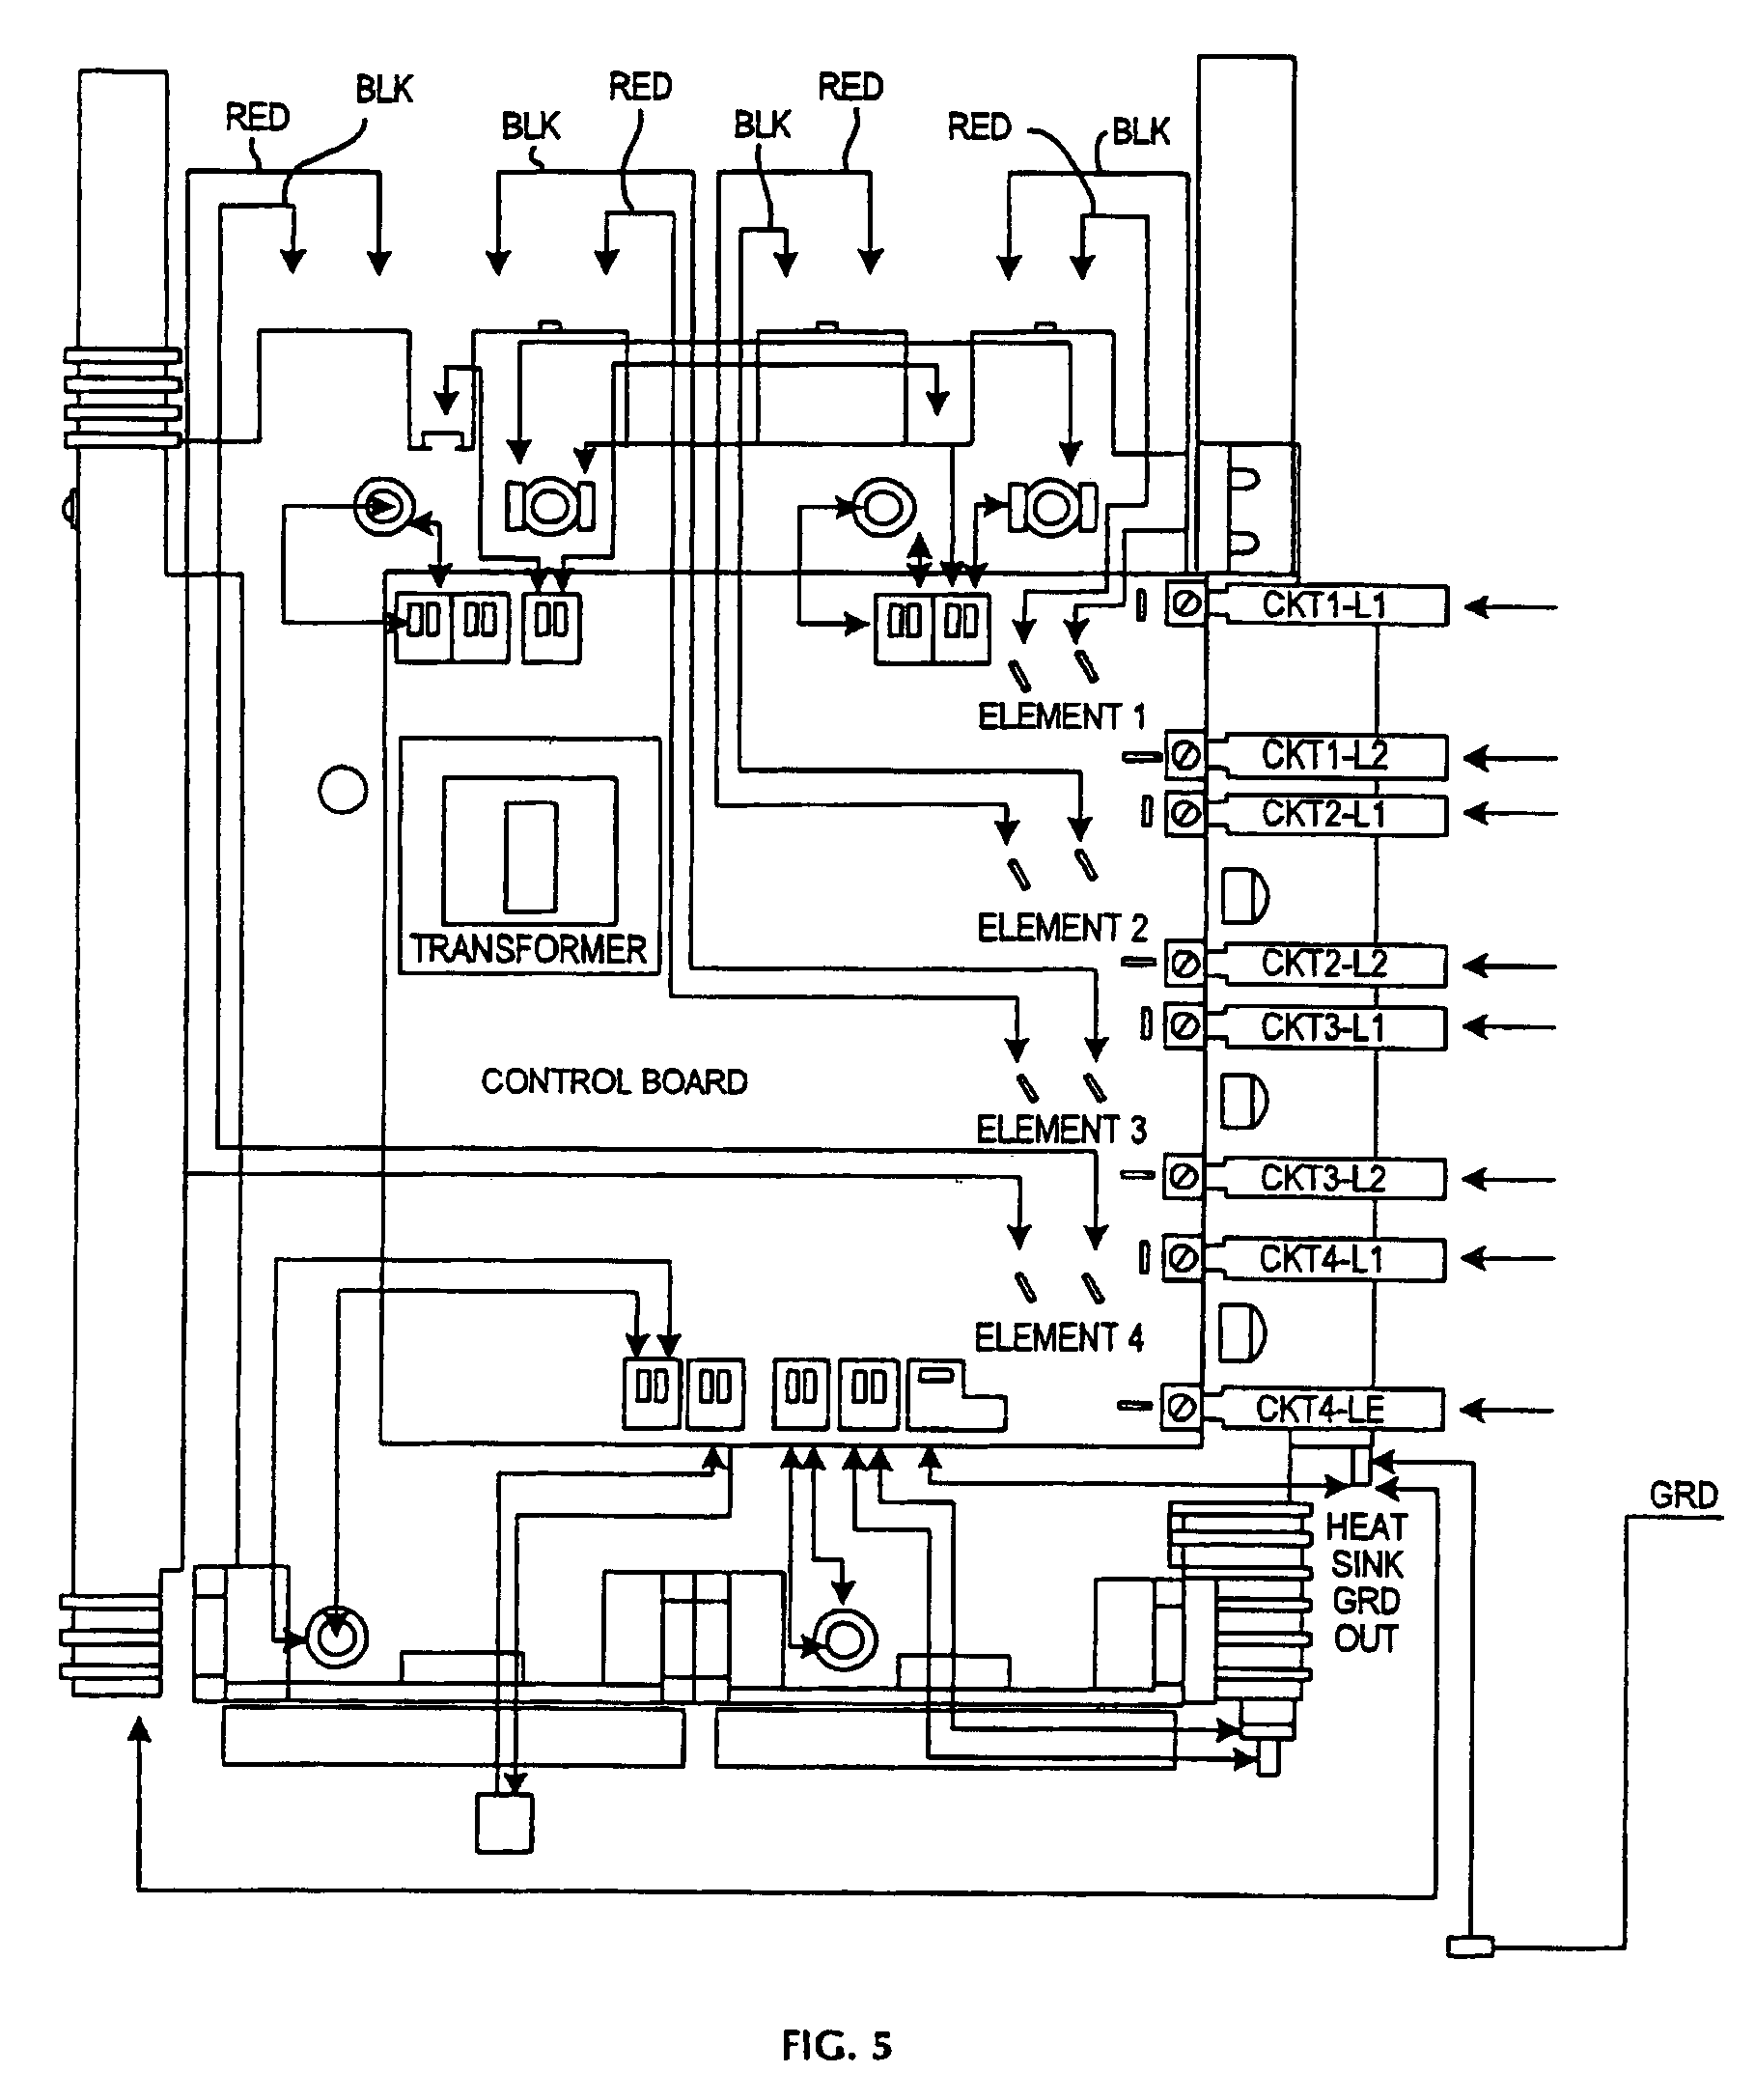 hight resolution of hot air furnace wiring diagram starting know about wiring diagram